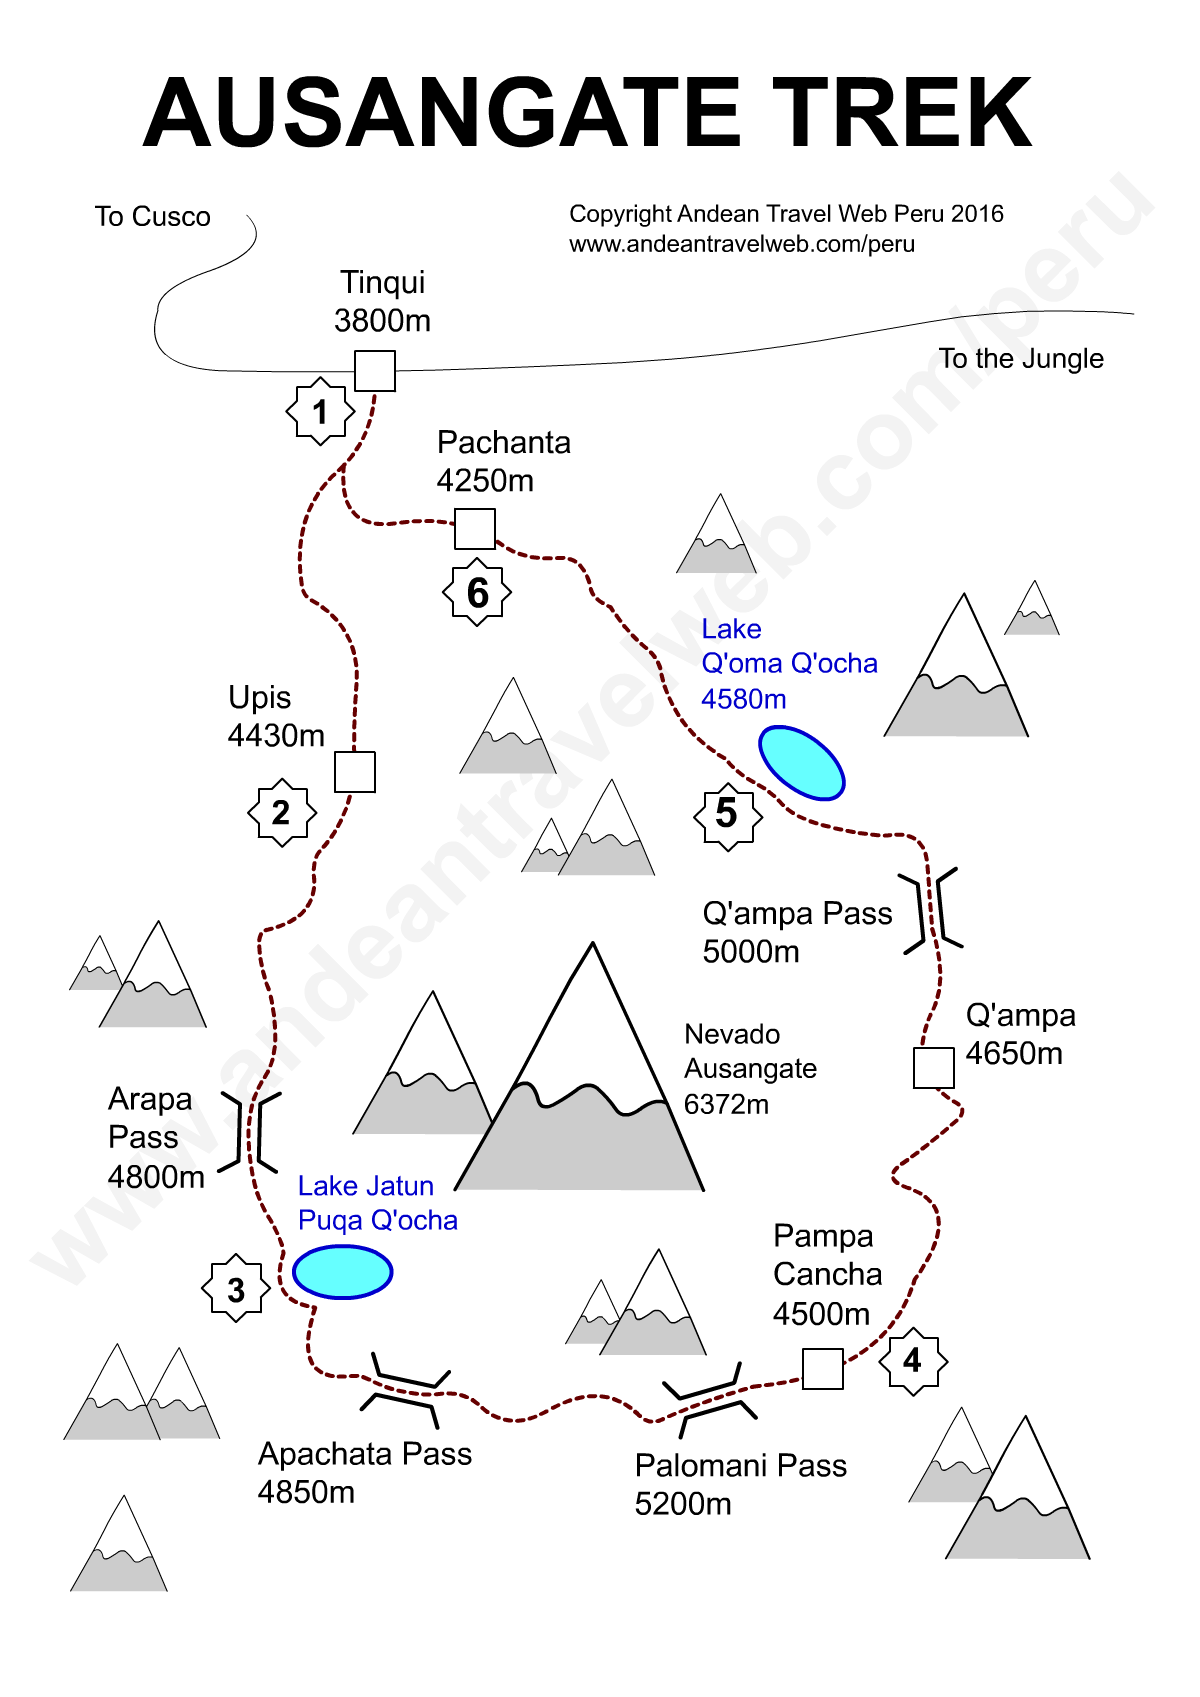 Map showing the route of the Ausangate trek including campsites and altitudes